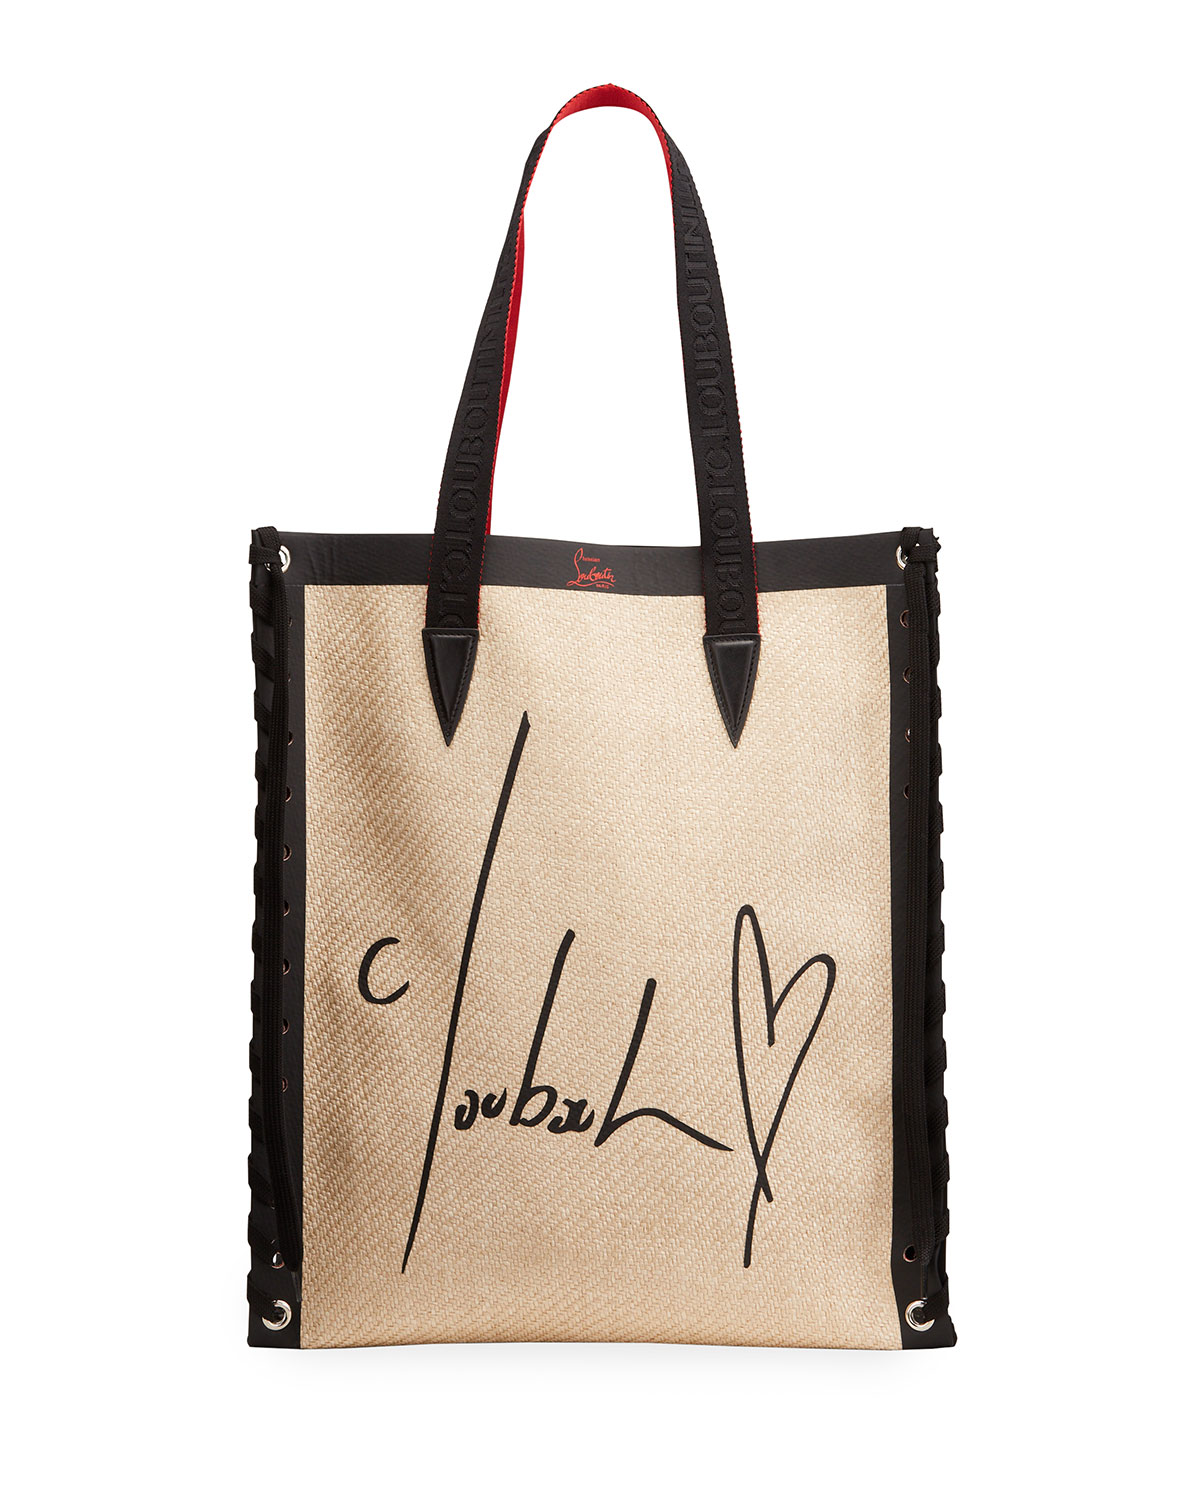 Christian Louboutin Canvases CABALACE STRAW ALL YOU NEED SMALL TOTE BAG